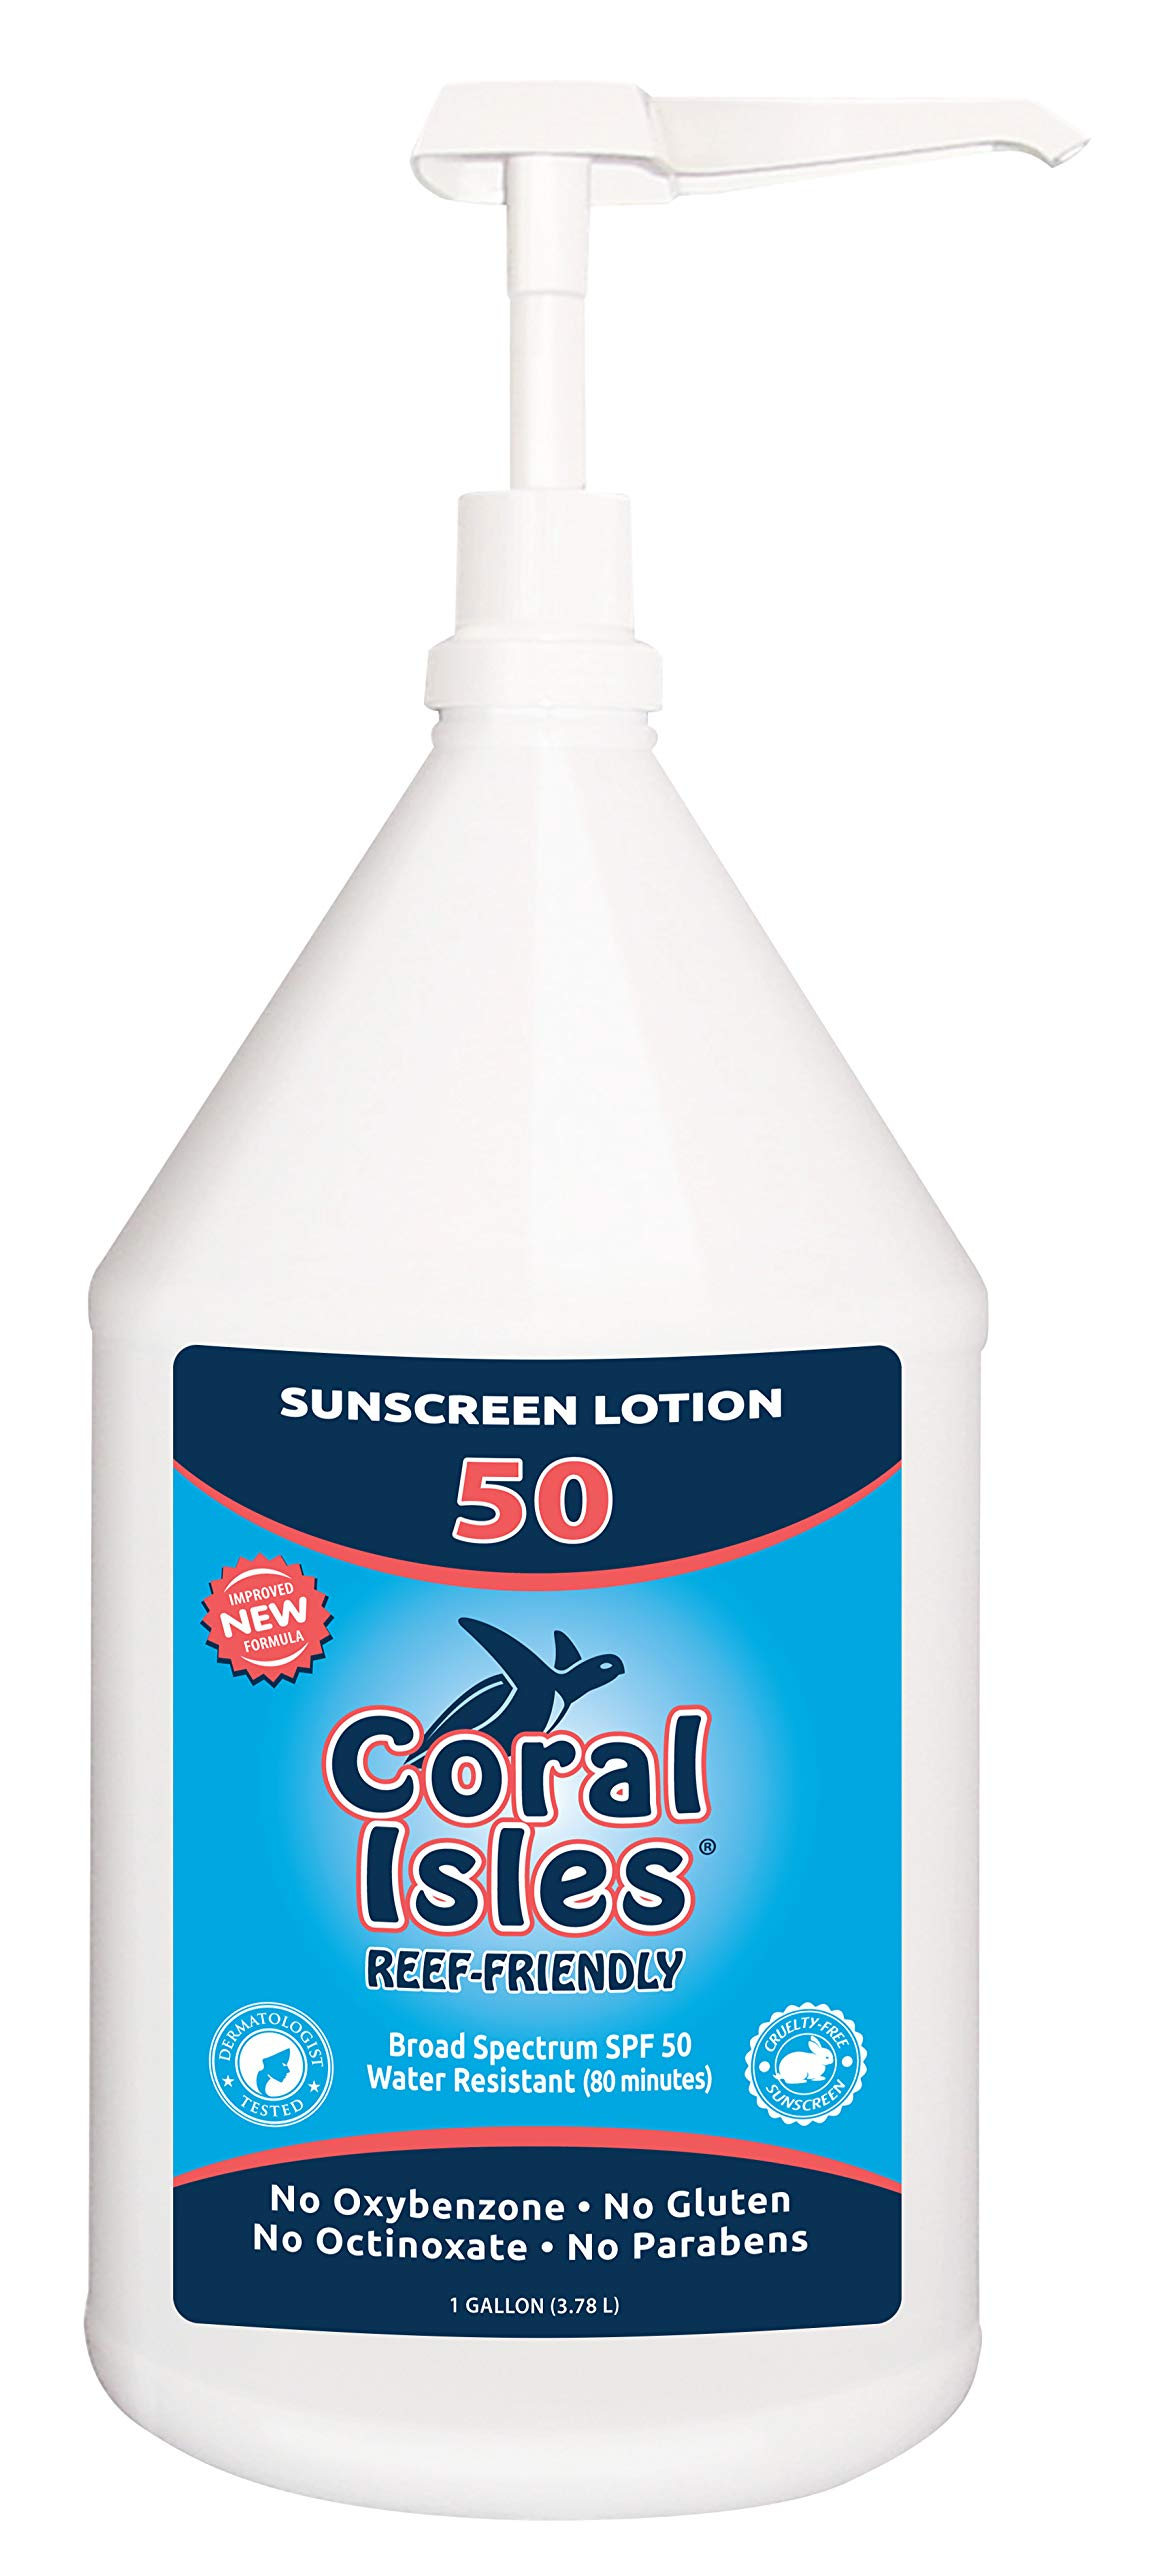 Gallon 128 oz Coral Isles REEF FRIENDLY & Safe Sunscreen - Broad Spectrum, NO Oxybenzone, NO Octinoxate, NO Parabens, Water Resistant 80 min